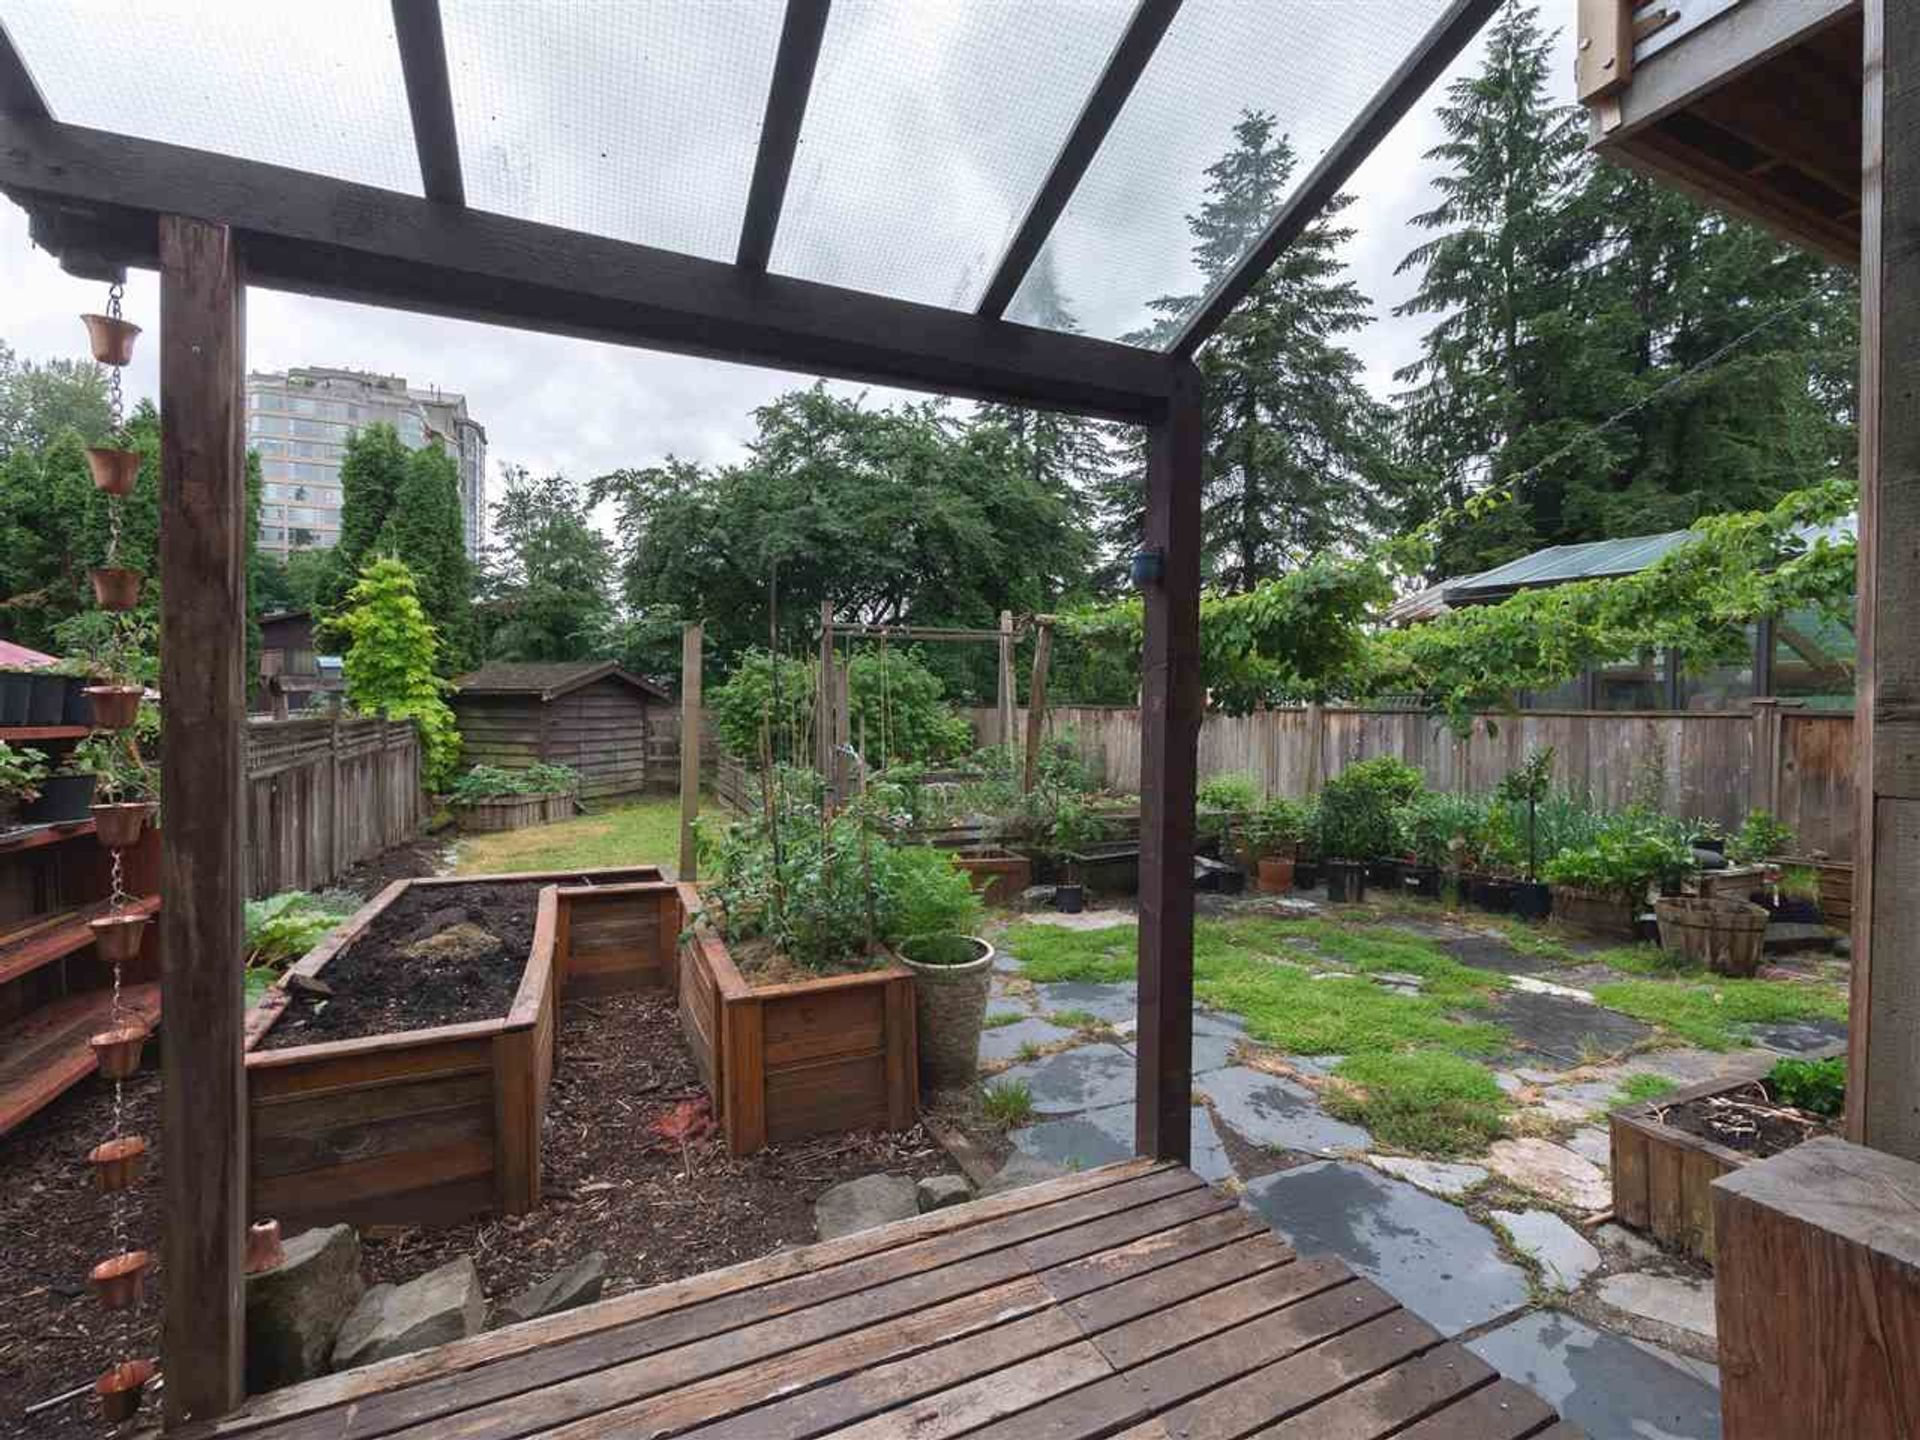 1335-e-8th-street-lynnmour-north-vancouver-14 at 1335 E 8th Street, Lynnmour, North Vancouver